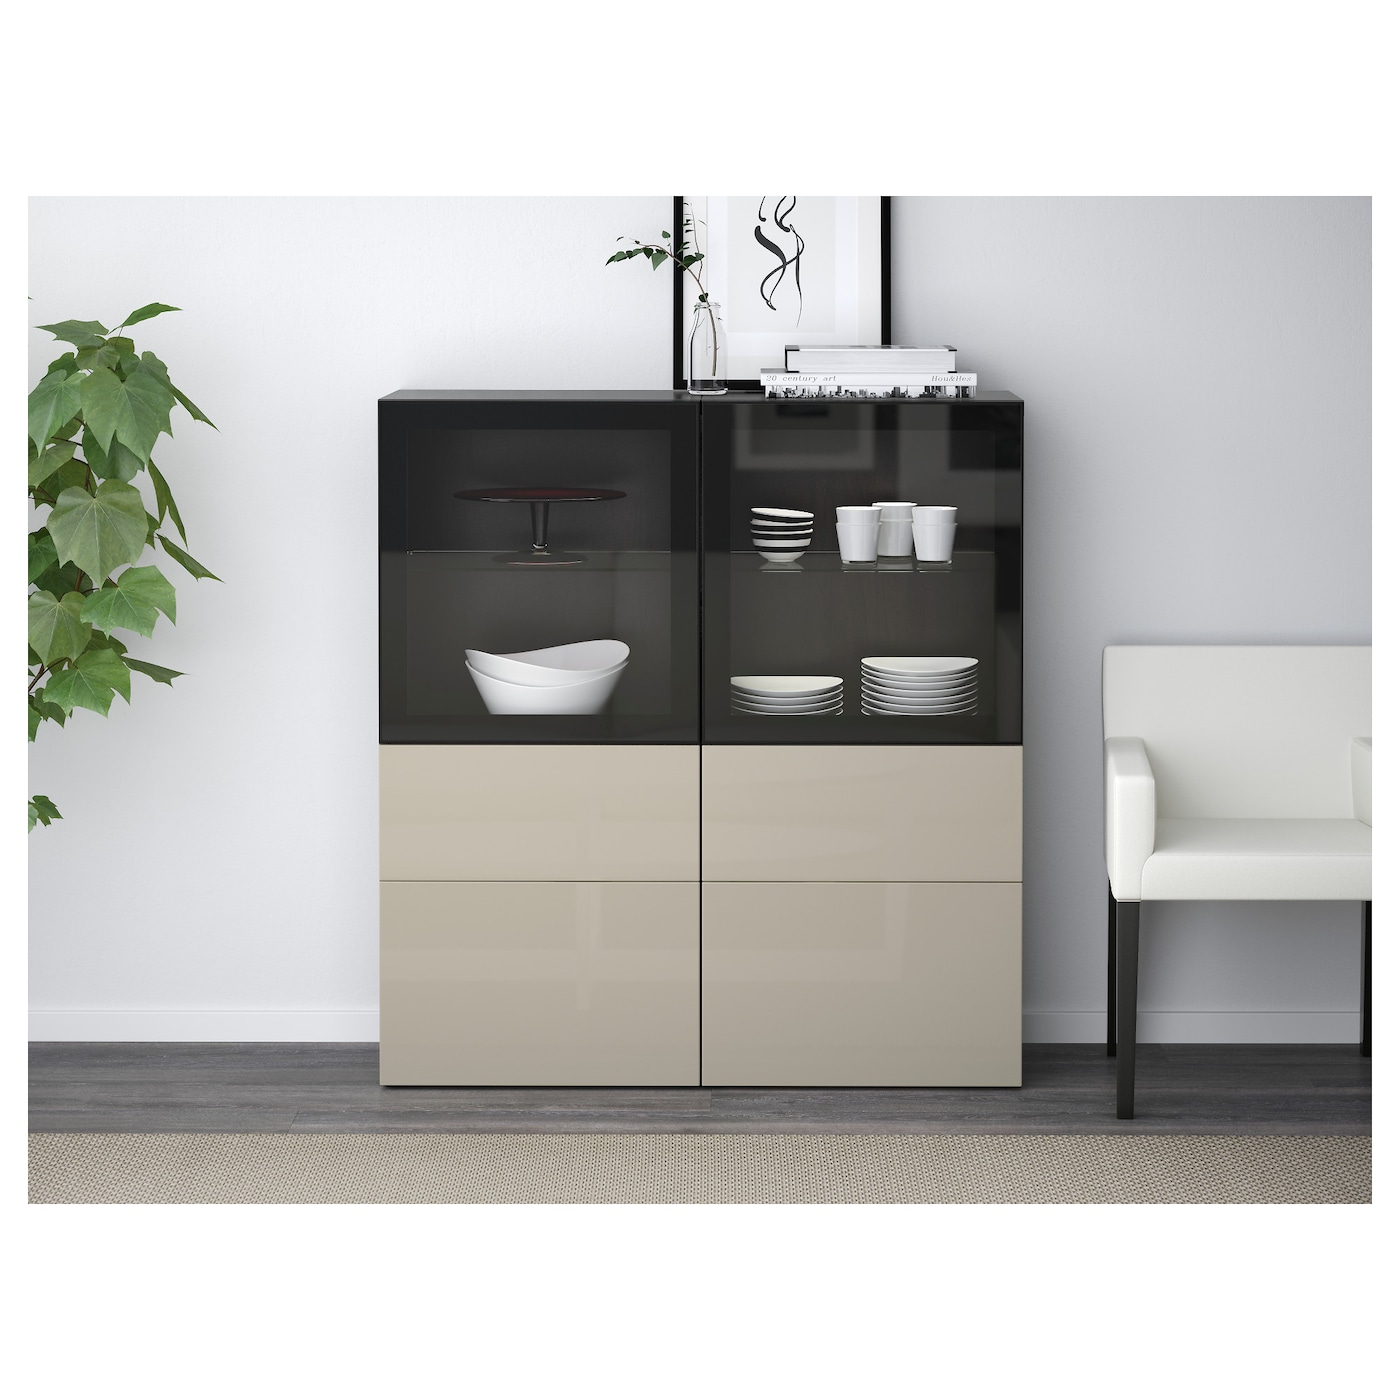 best storage combination w glass doors black brown selsviken high gloss beige clear glass 120 x. Black Bedroom Furniture Sets. Home Design Ideas